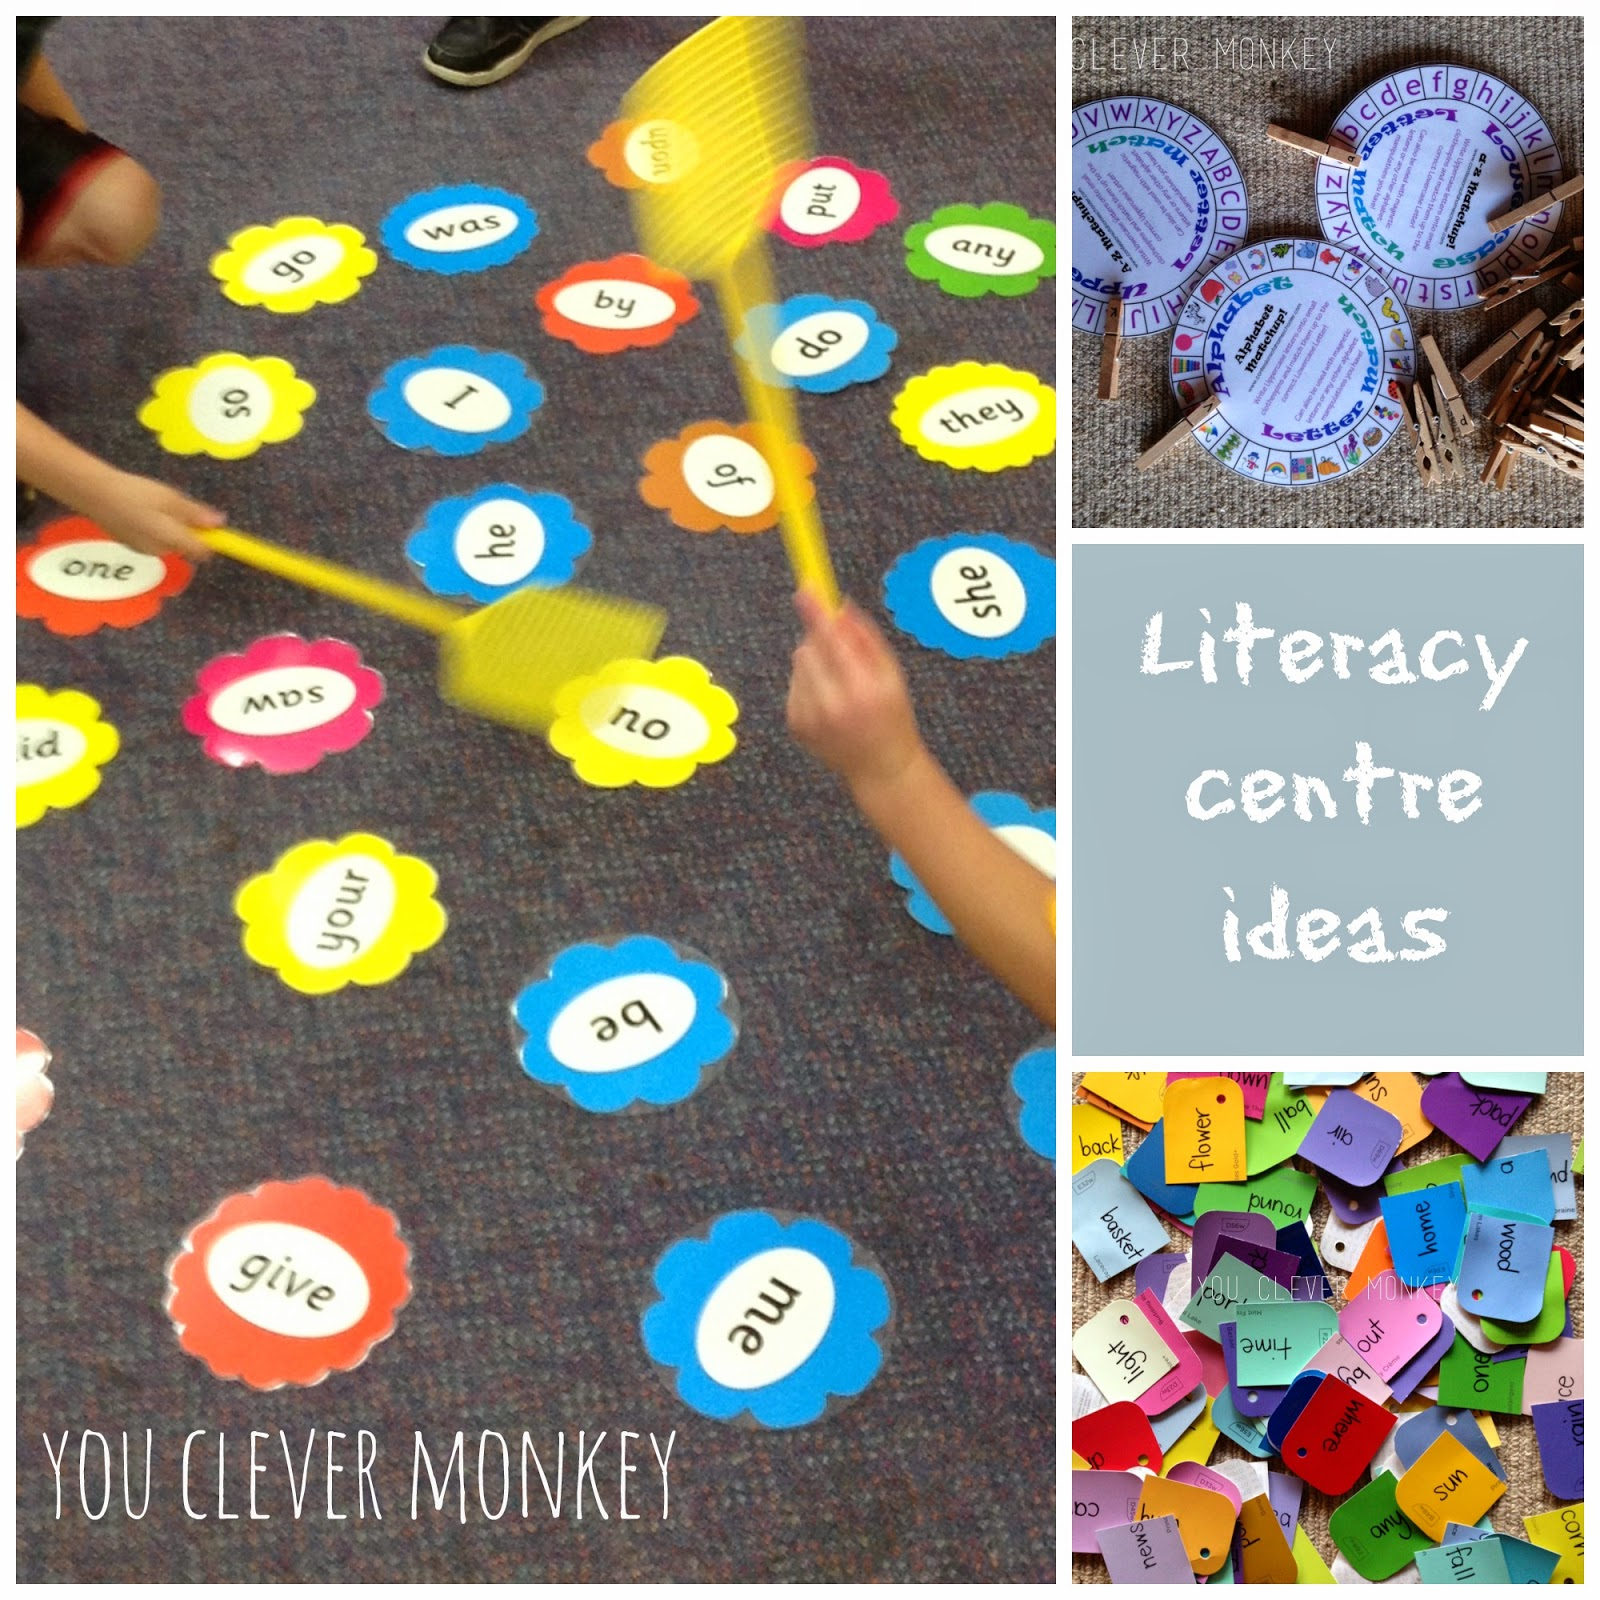 Classroom Literacy Ideas : Literacy centres ideas from my classroom you clever monkey